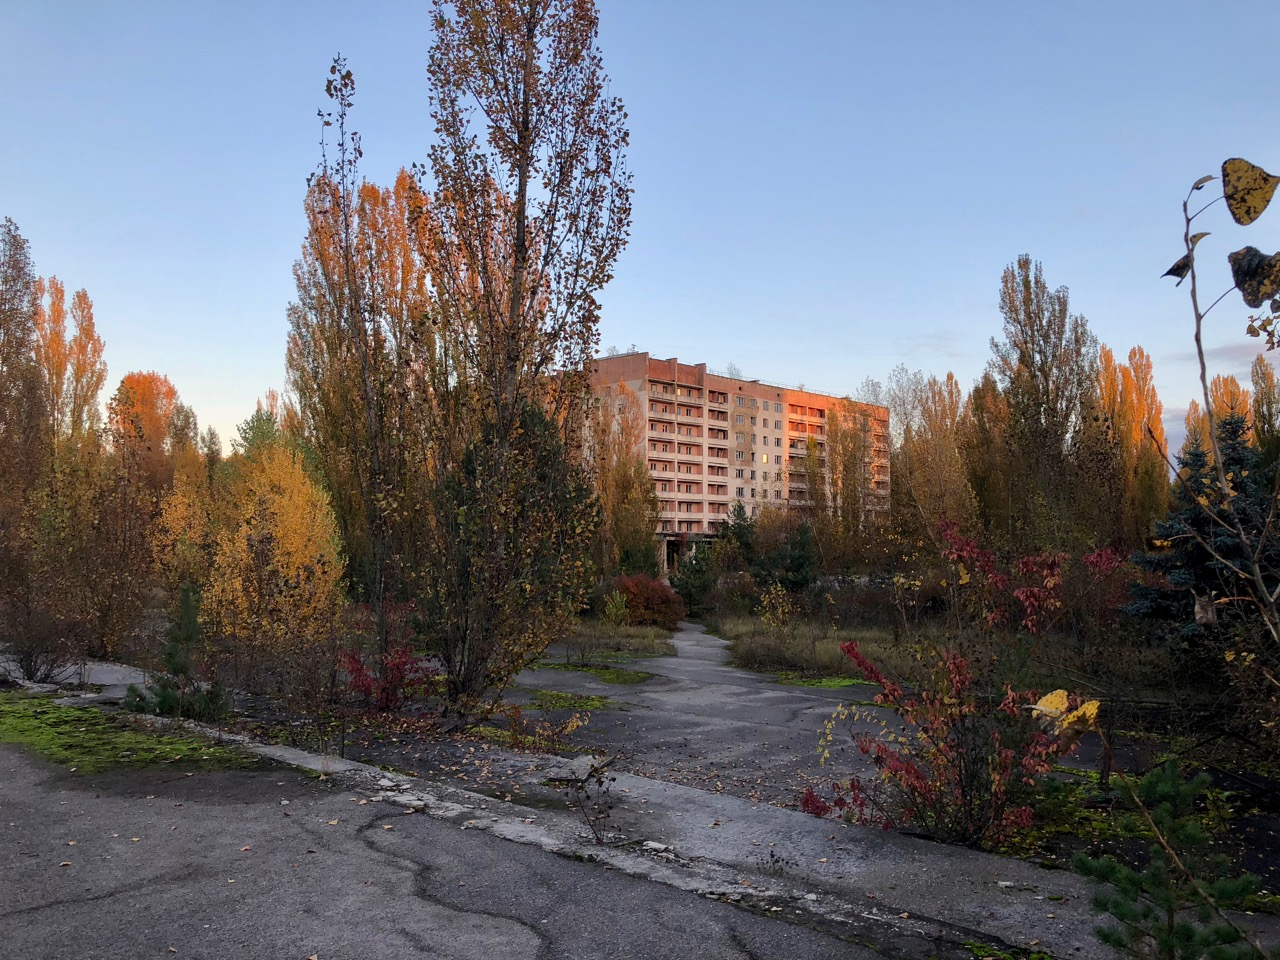 Main square of Pripyat, the ghost city